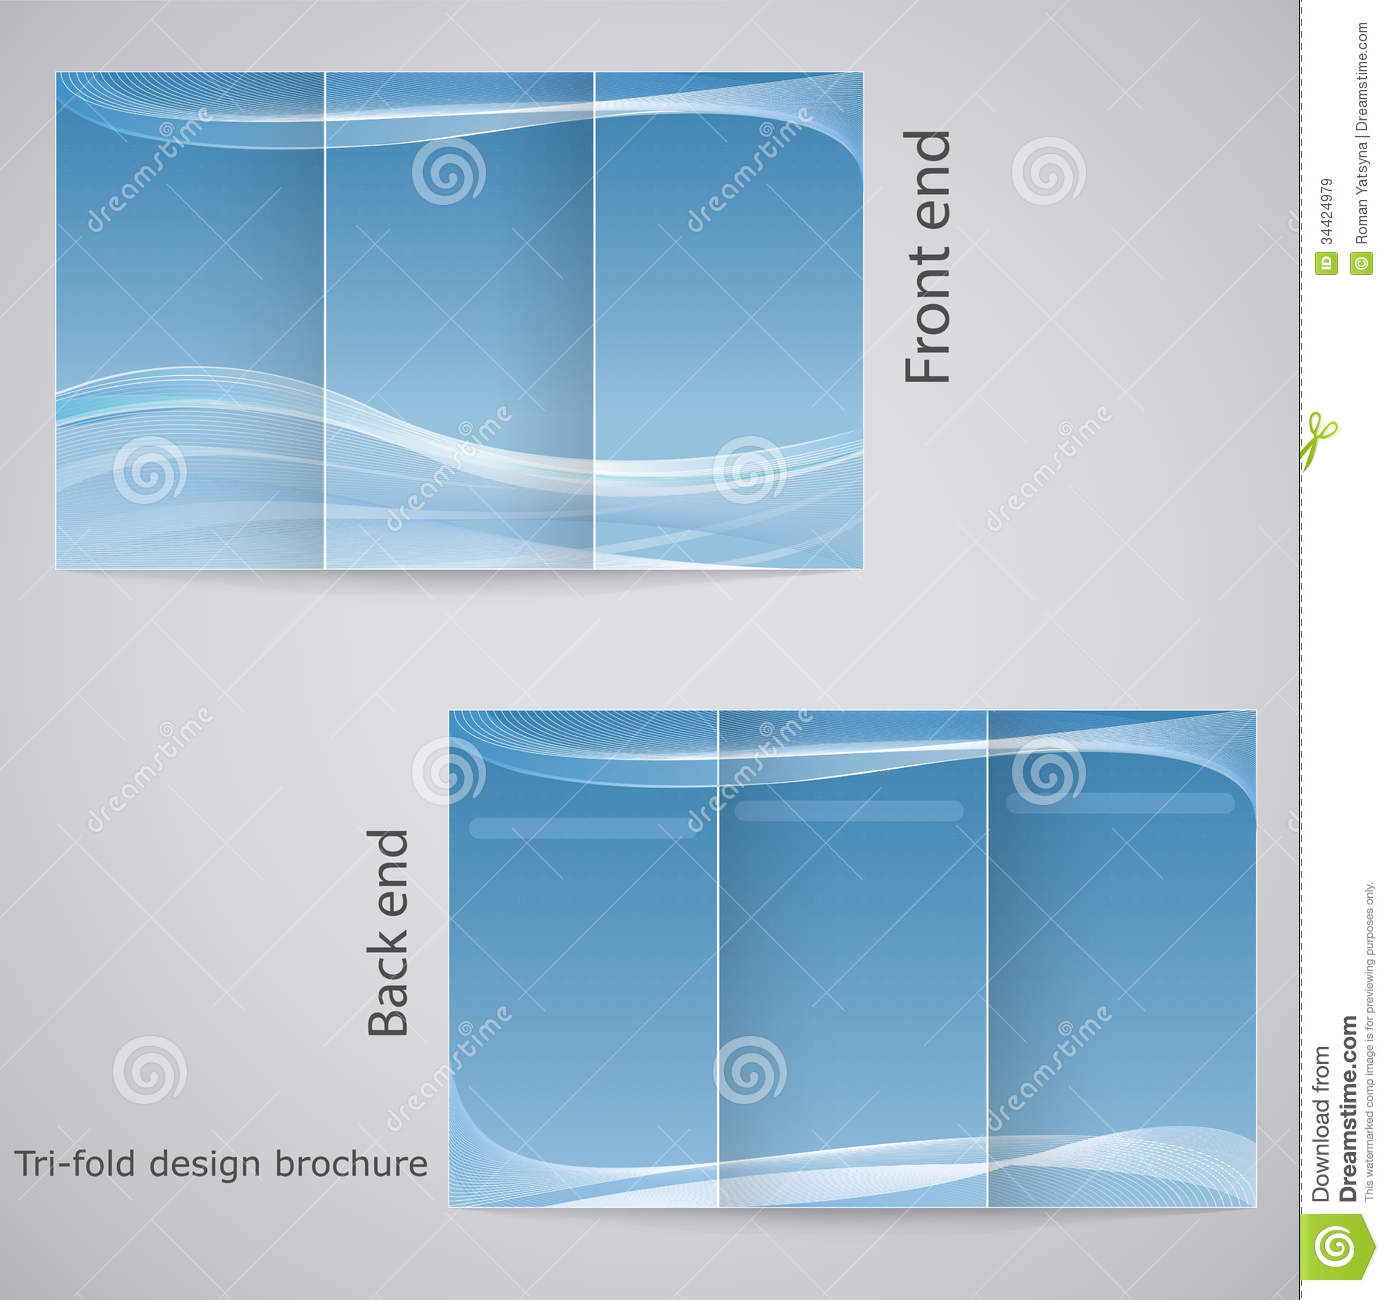 17 tri fold brochure design templates images tri fold for Free online tri fold brochure template